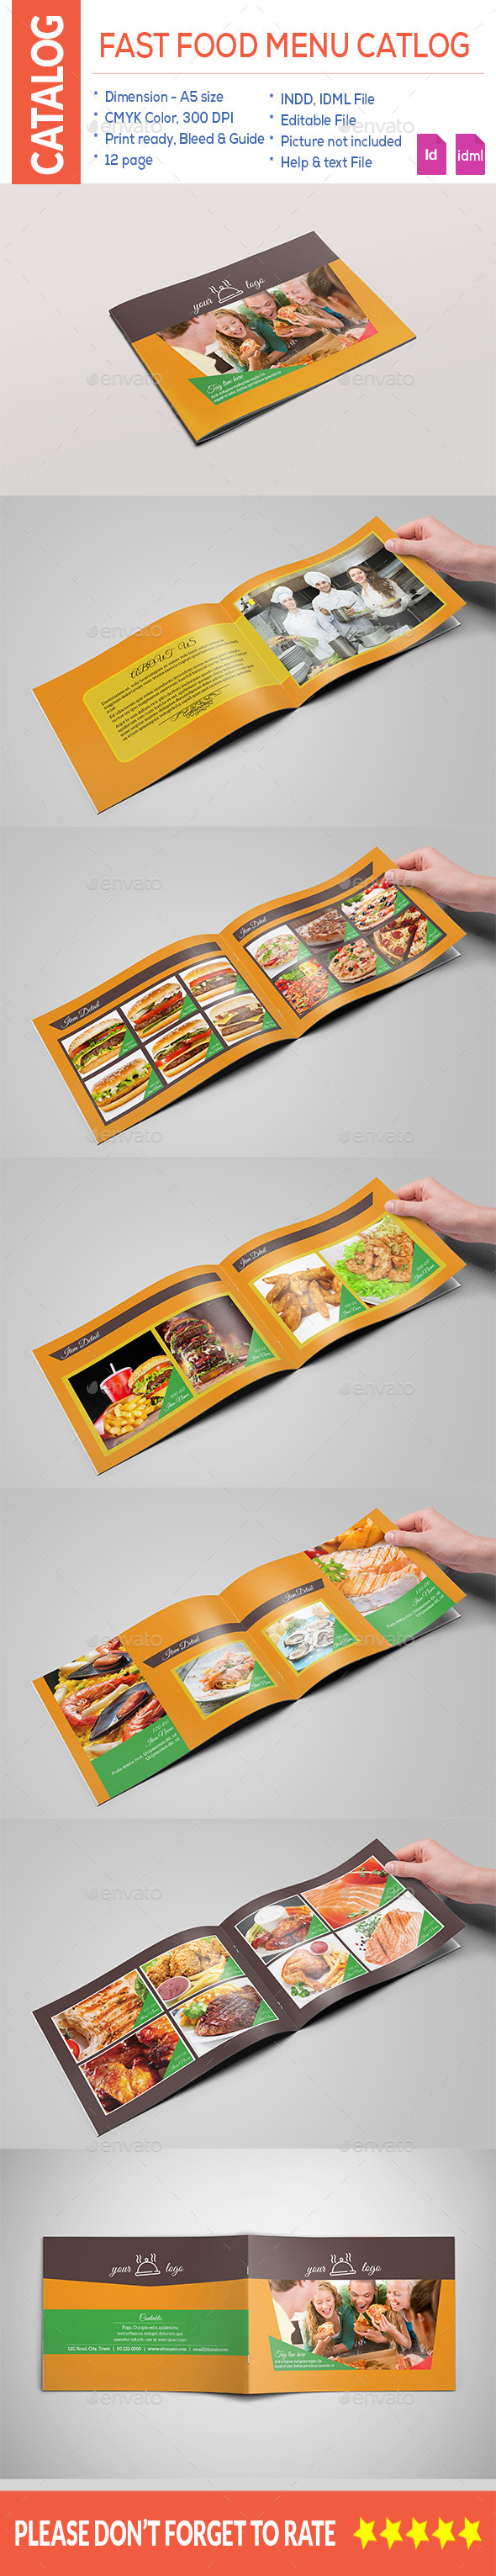 Fast Food Menu Catalog - Catalogs Brochures